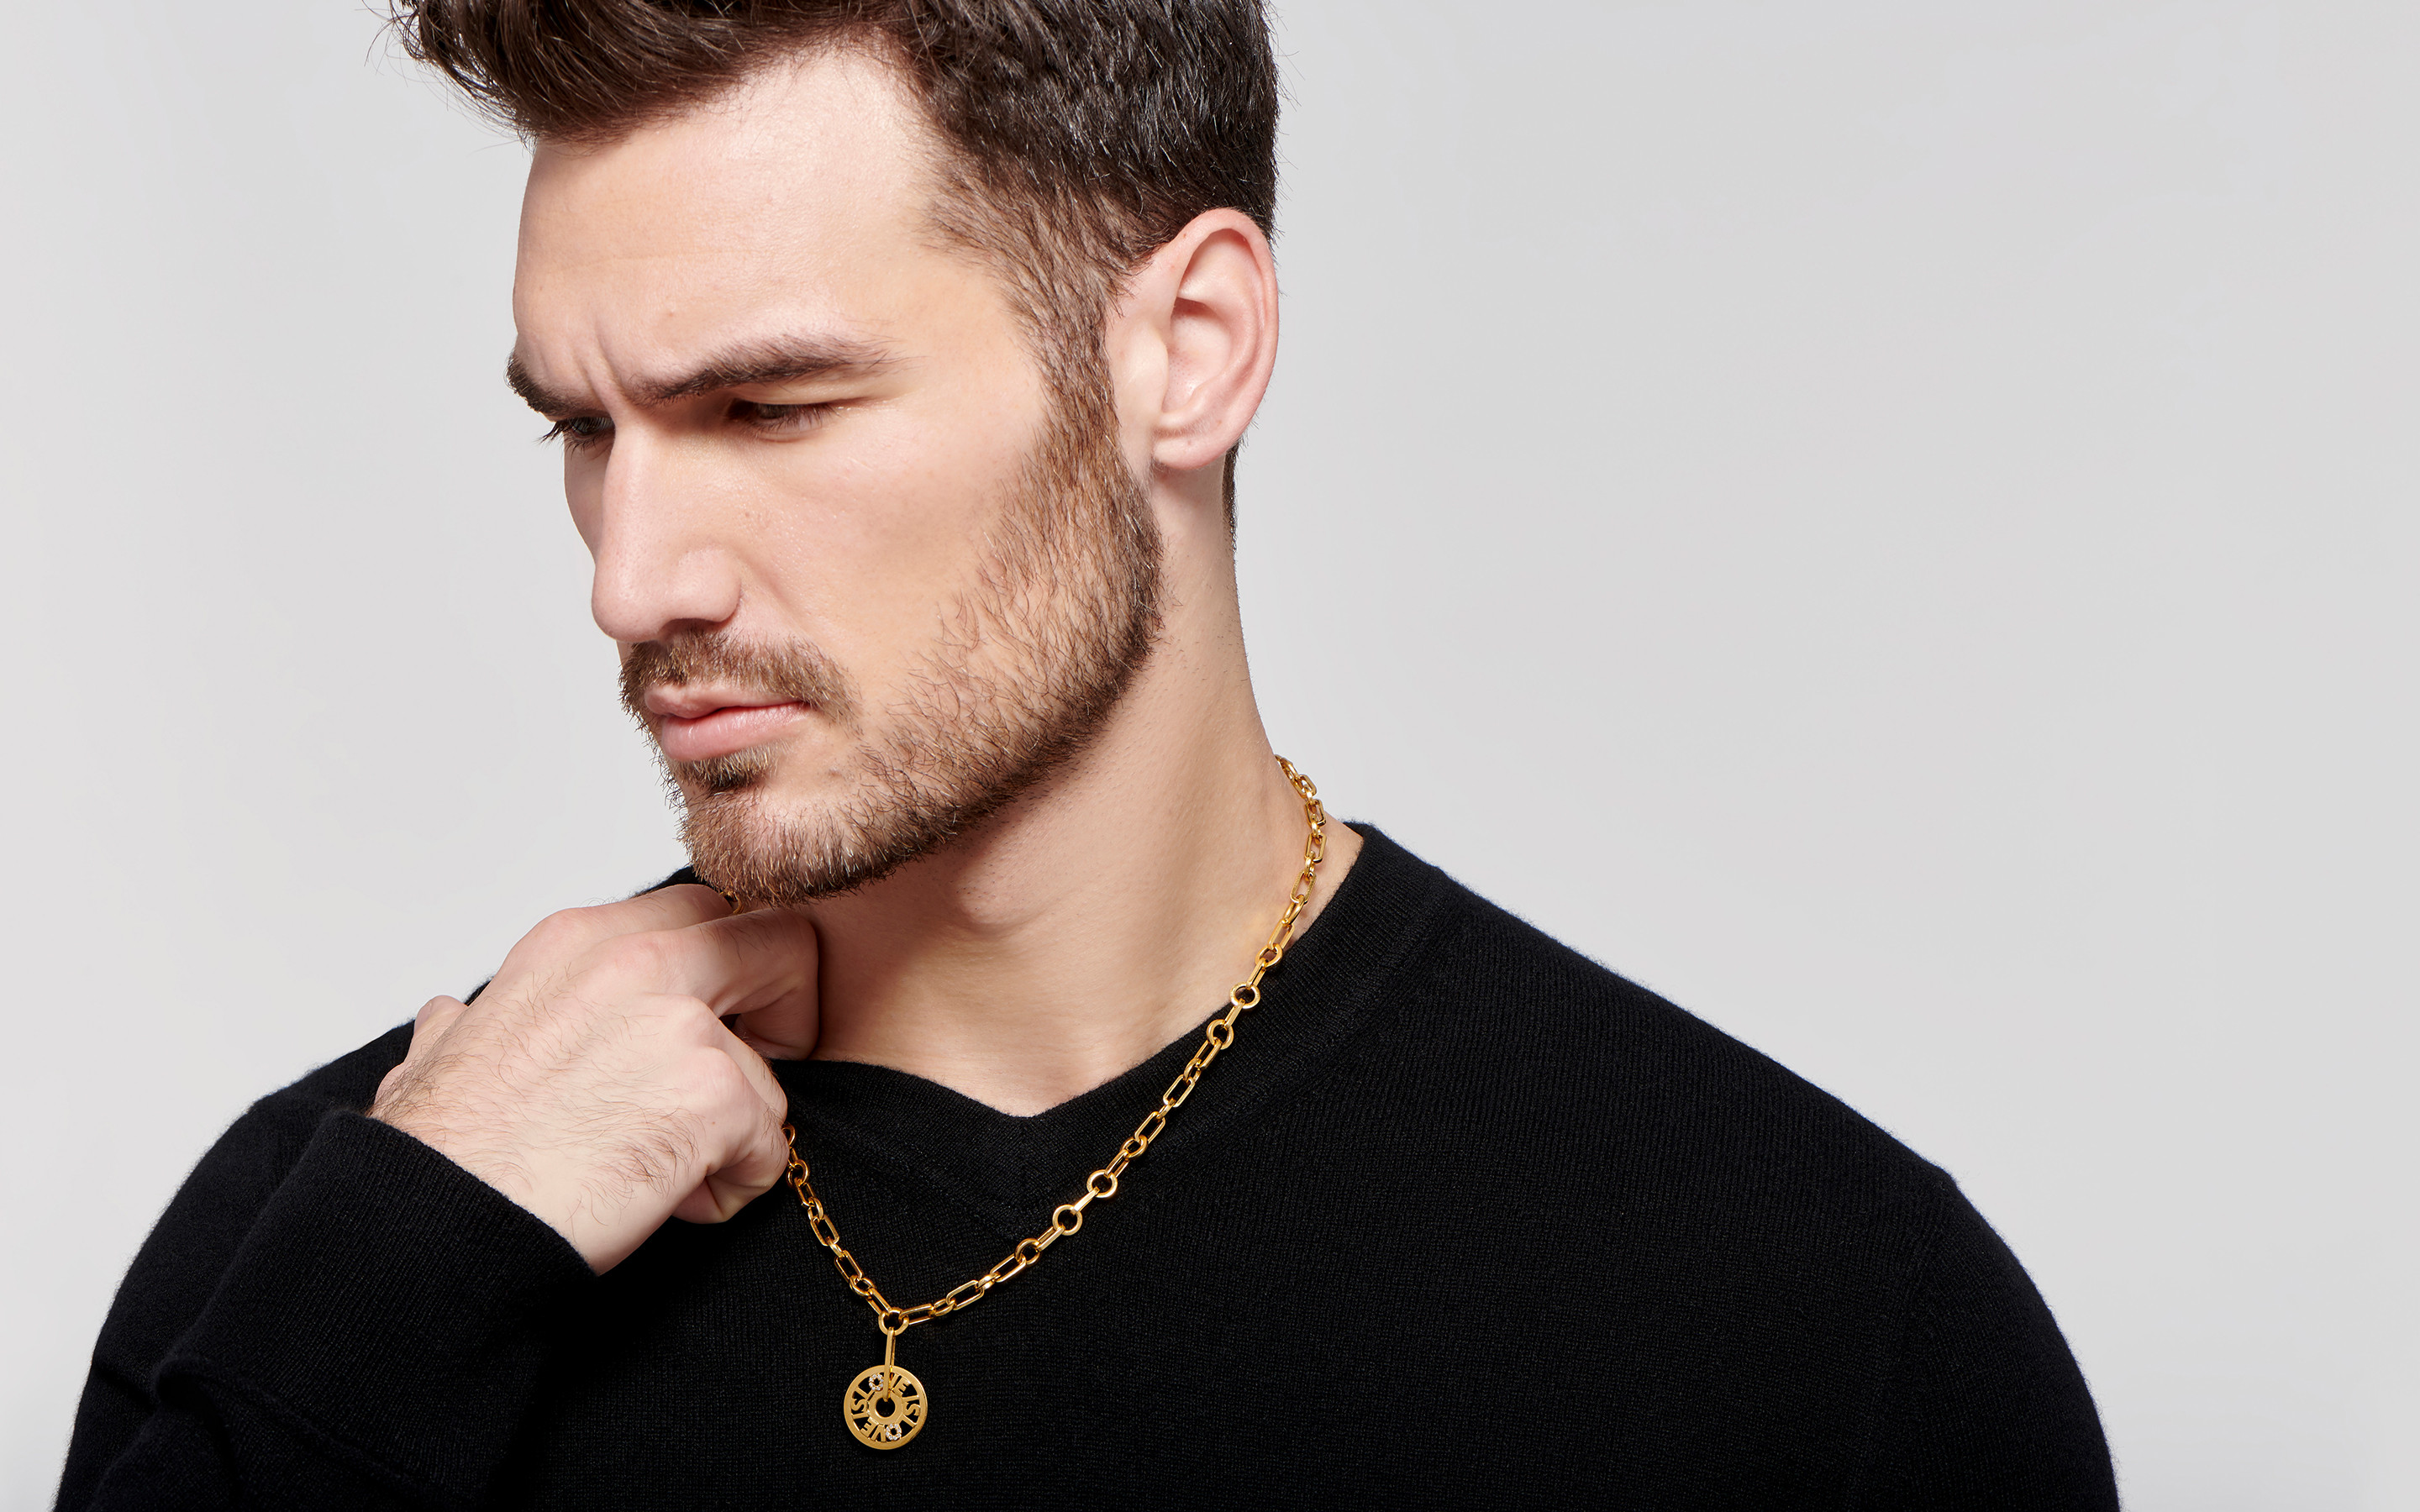 Steadfast  white male model wrapped in a gorgeous 22 carat gold necklace